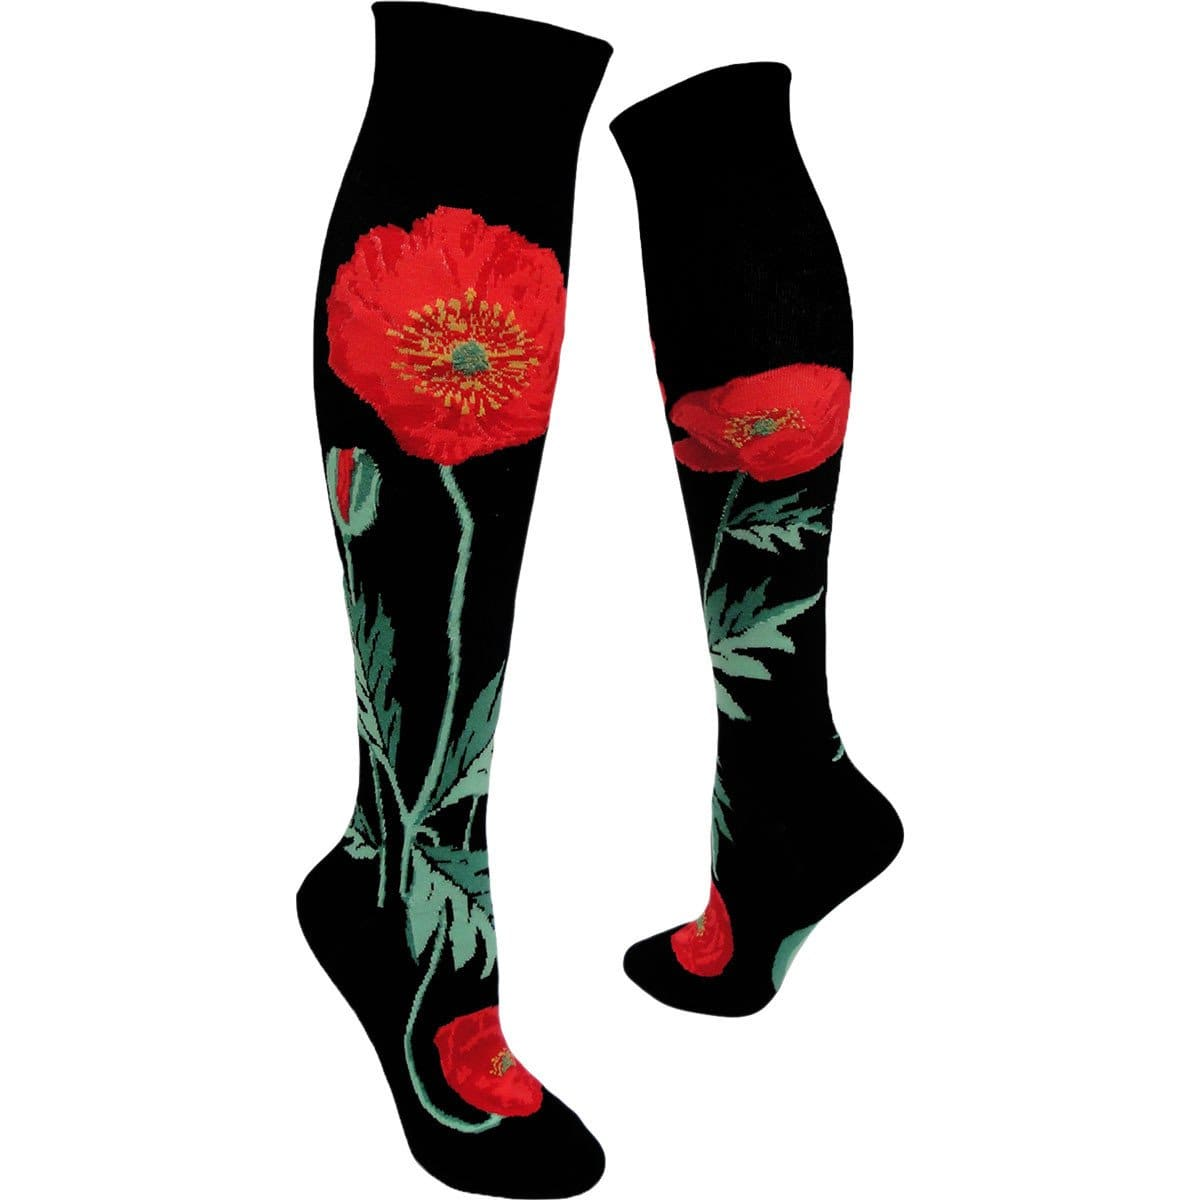 Black Bold Poppies Flower Socks - Knee High